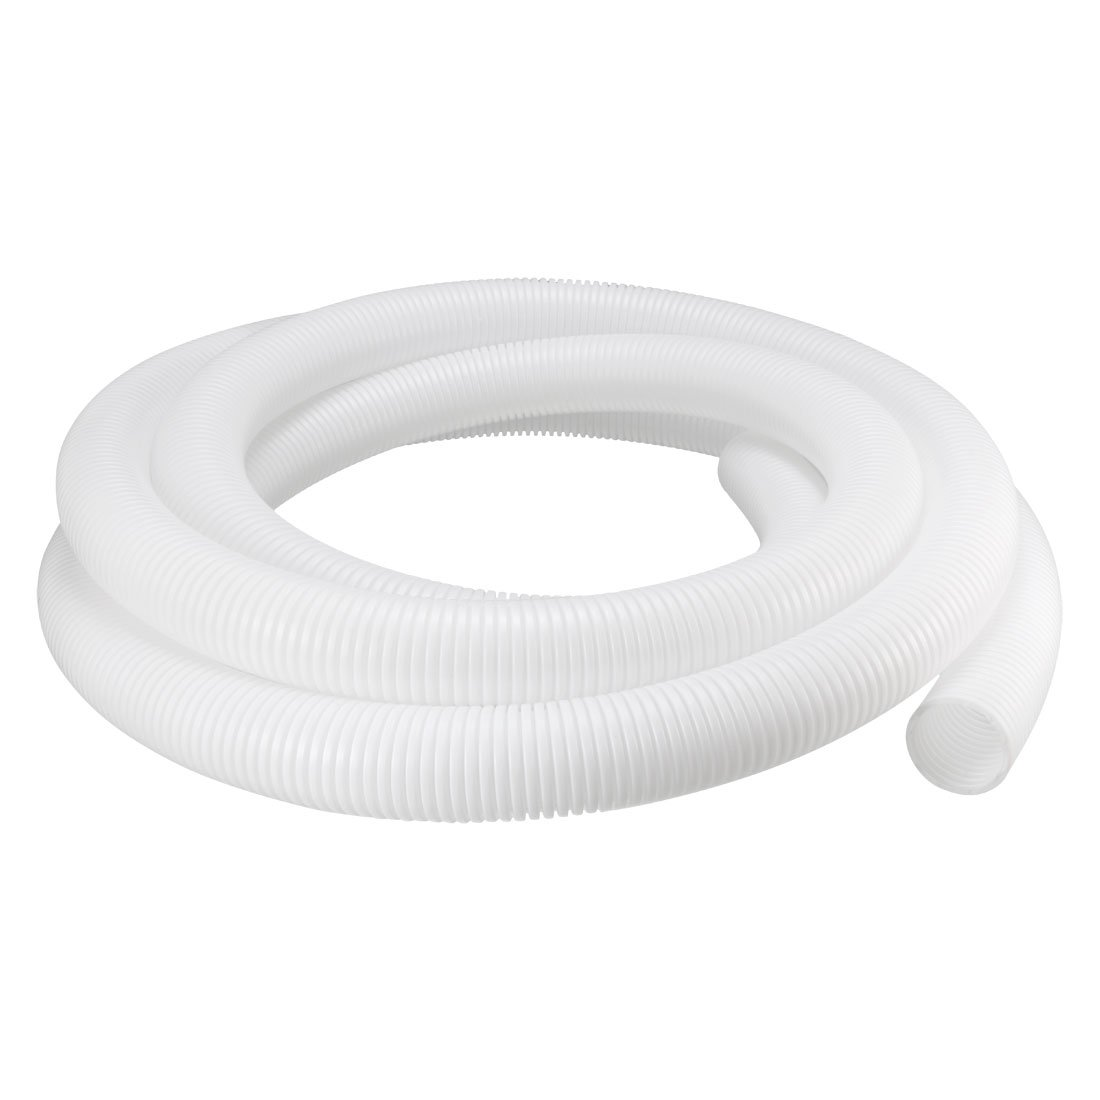 uxcell® 5M Length 42.5mm Outside Dia Corrugated Bellow Conduit Tube for Electric Wiring